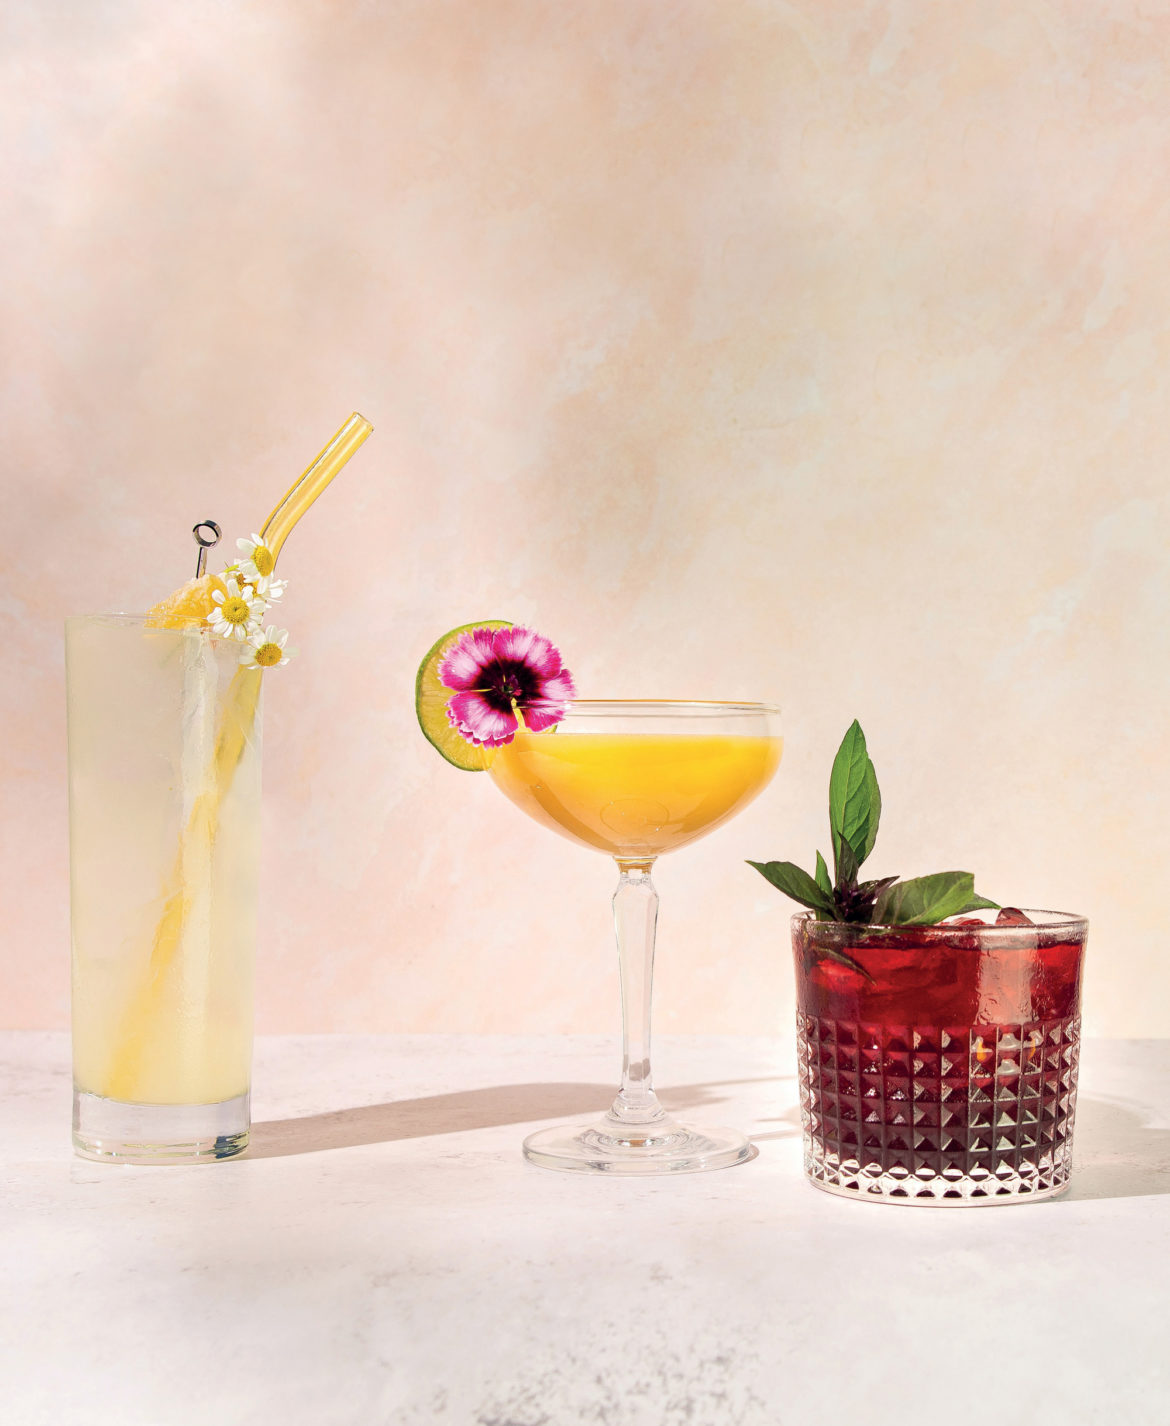 Alyson Brown cocktail creations